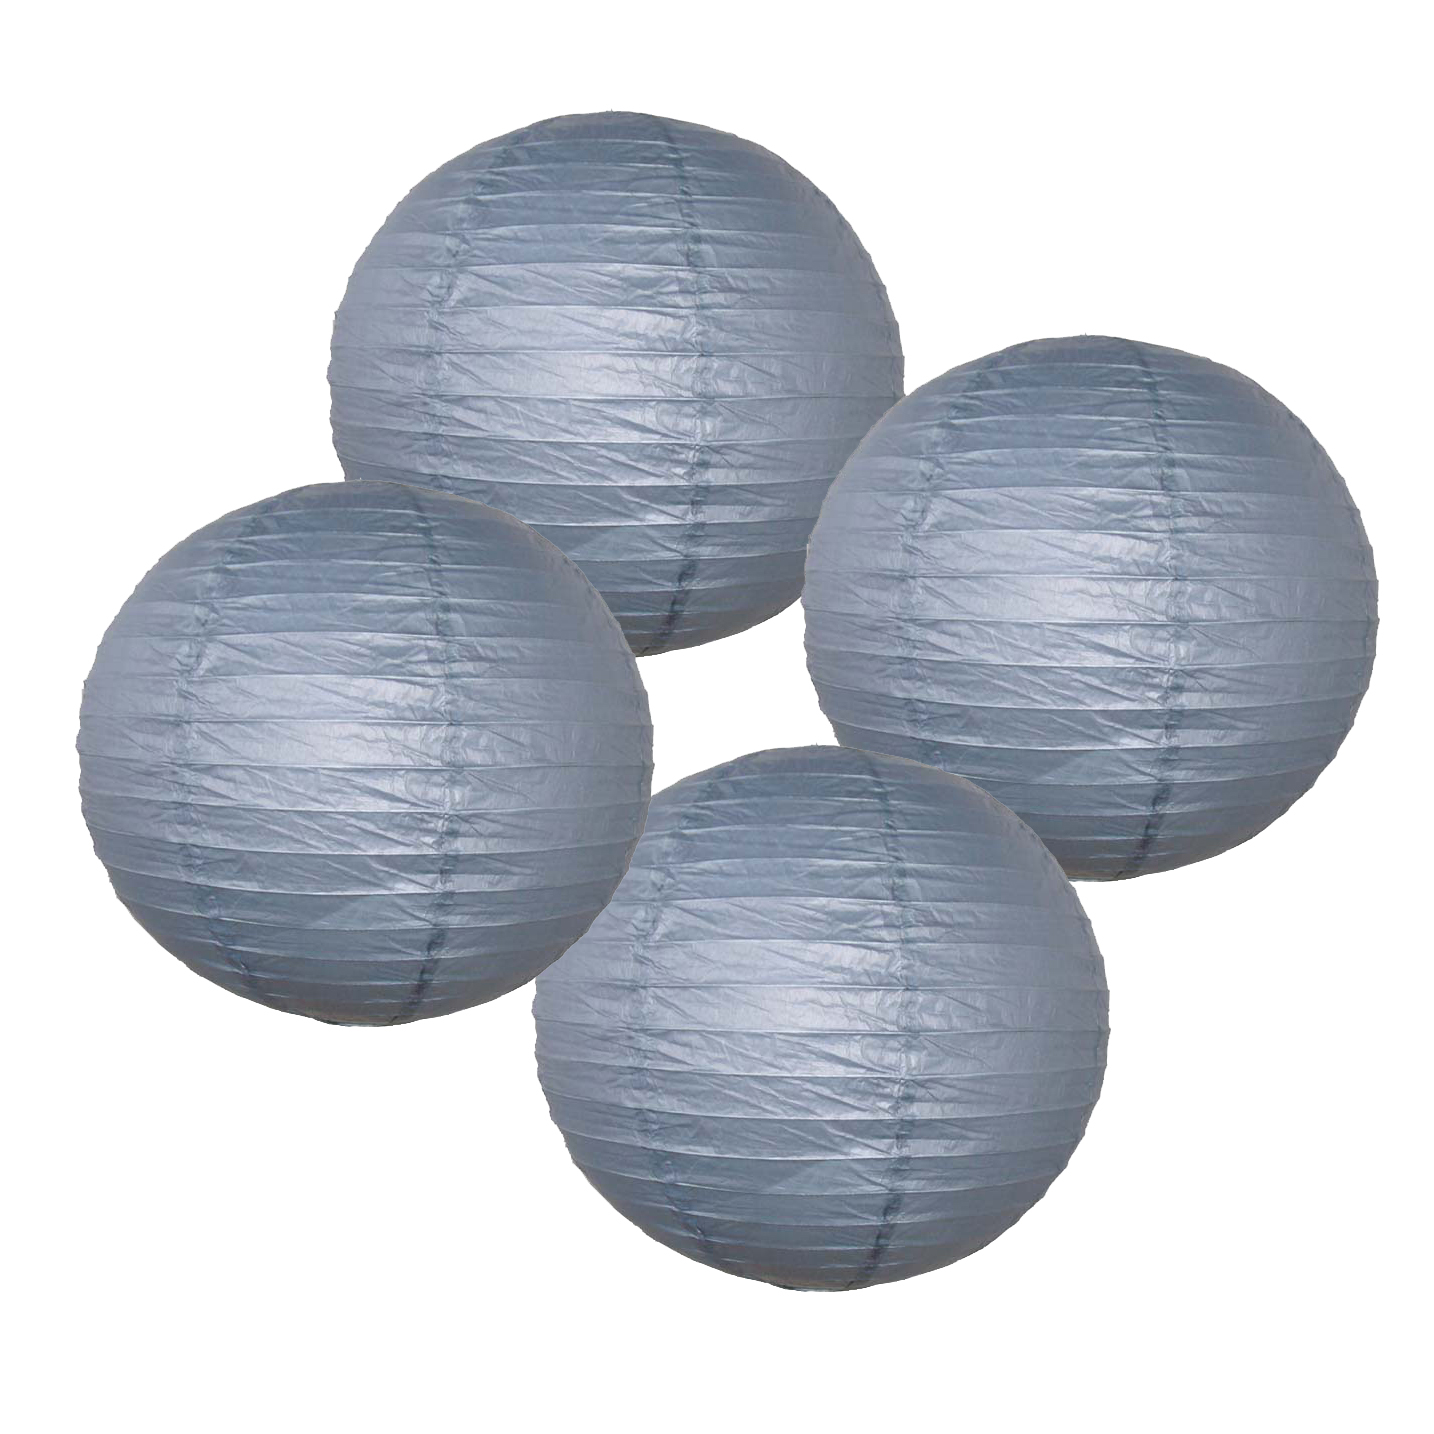 """Just Artifacts 6"""" Navy Blue Paper Lanterns (Set of 4) - Decorative Round Chinese/Japanese Paper Lanterns for Birthday Parties, Weddings, Baby Showers, and Life Celebrations!"""